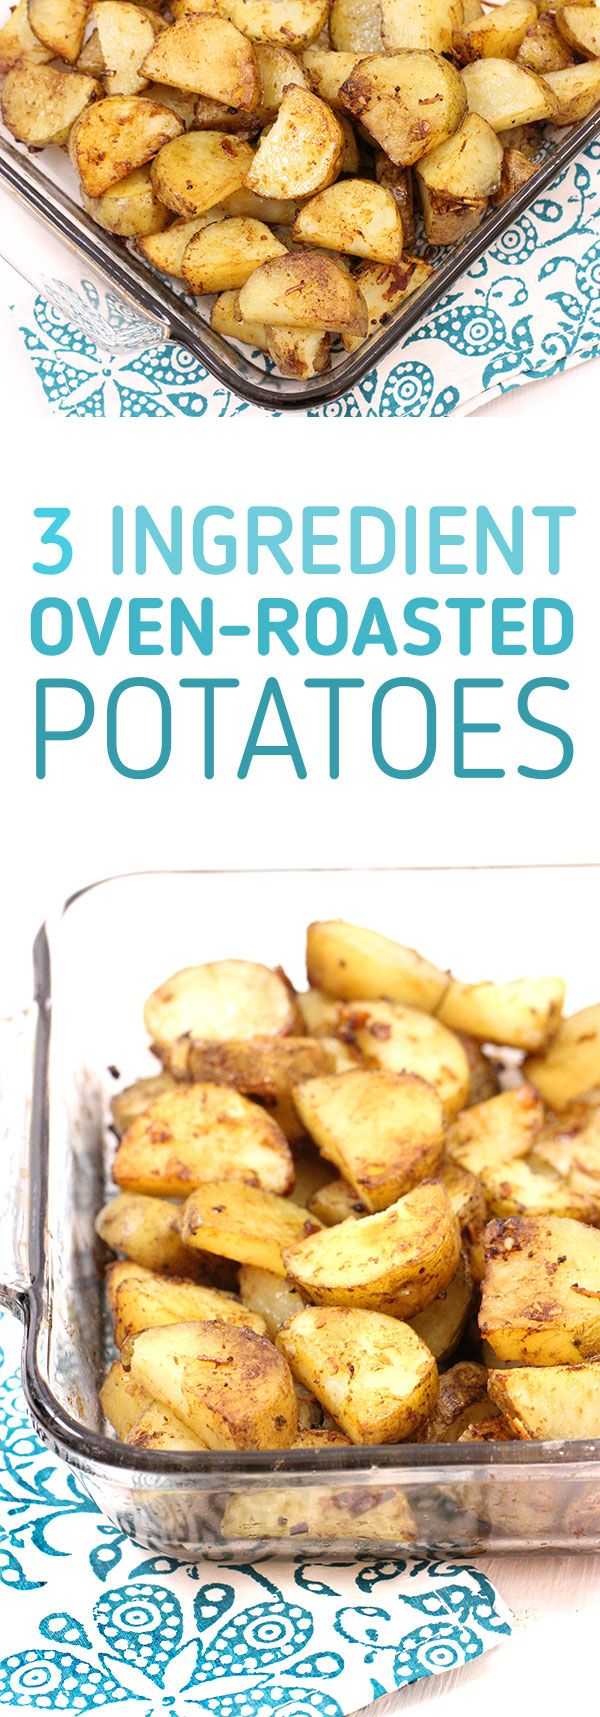 Oven roasted potatoes with only 3 ingredients. Click to see the secret ingredient that makes this yummy recipe come together so fast.  via @dawnchats